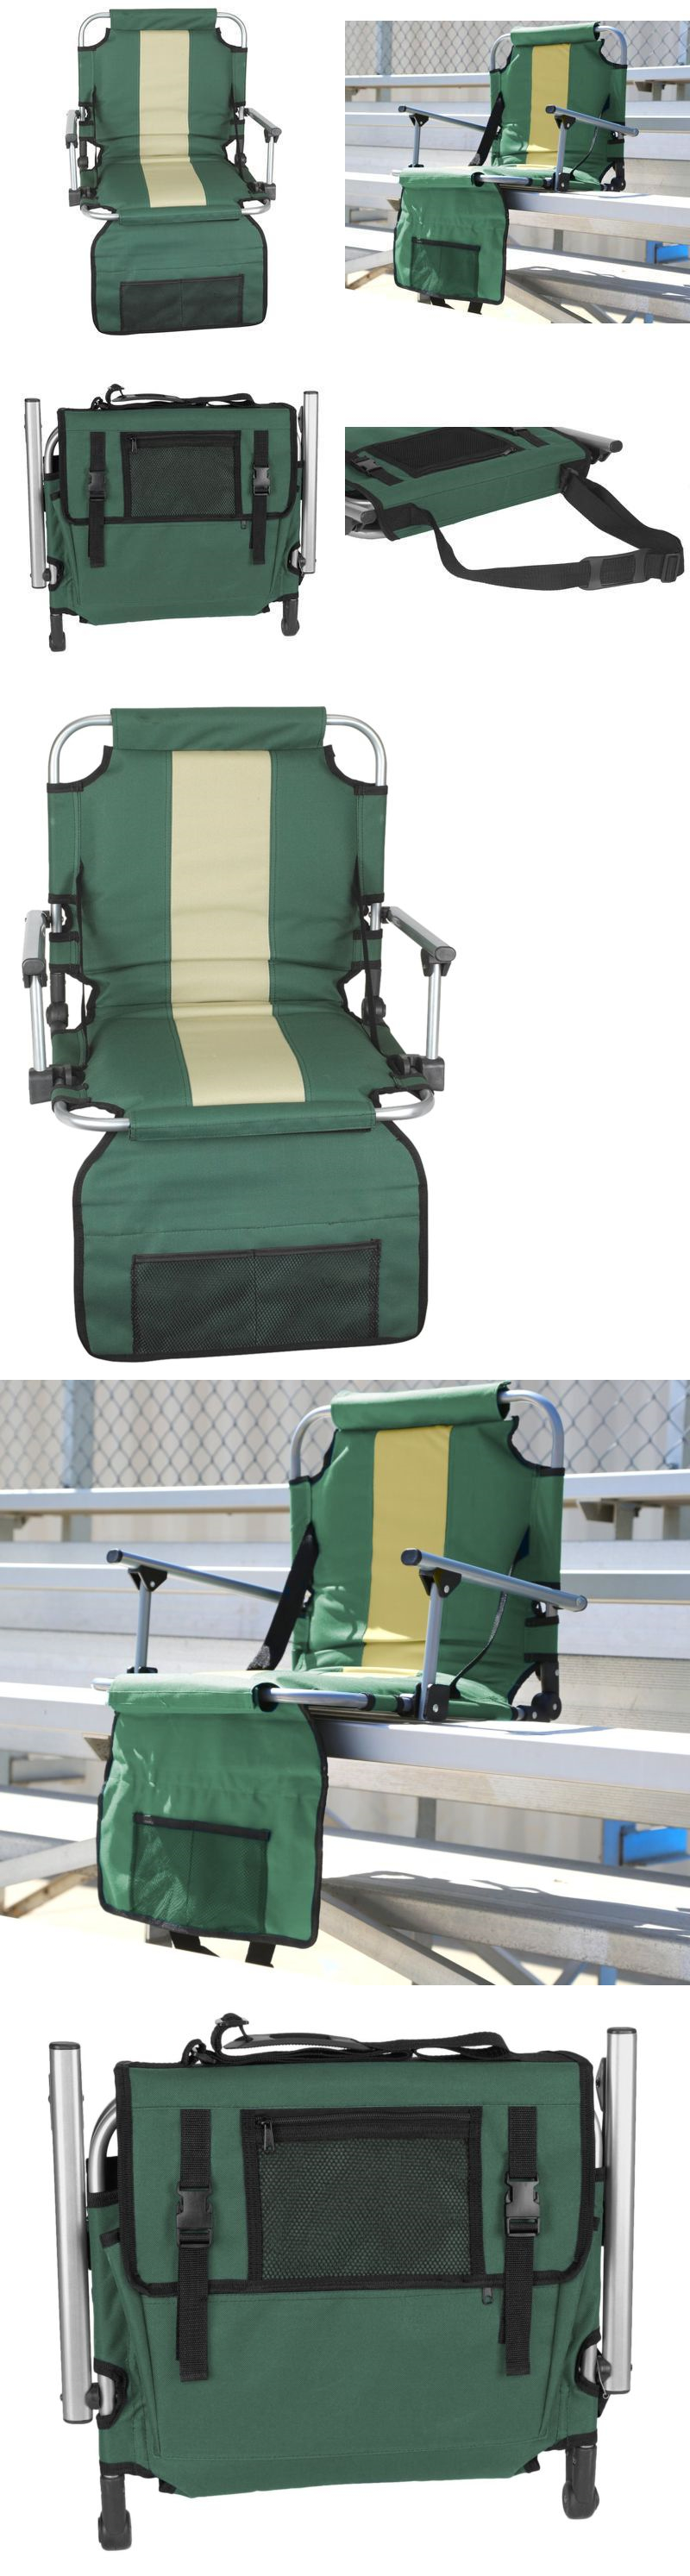 Other Outdoor Sports Park Portable Stadium Chair Football